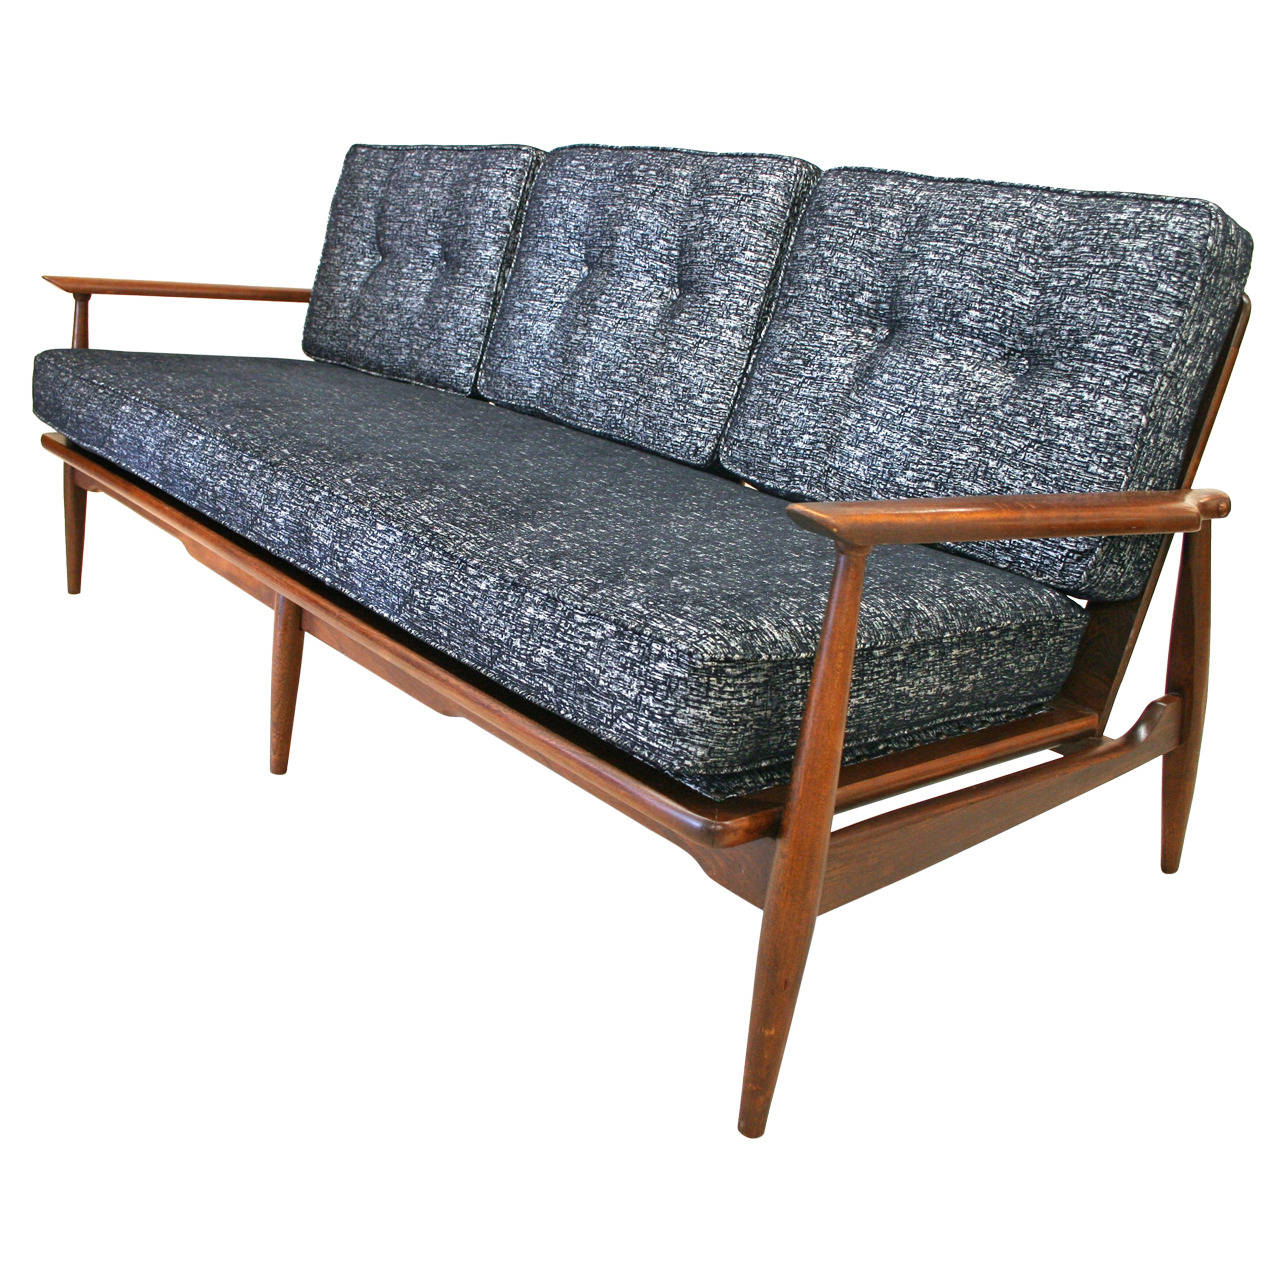 Mid Century Modern Sofas: Mid-Century Modern Danish Sofa With Walnut Frame And New